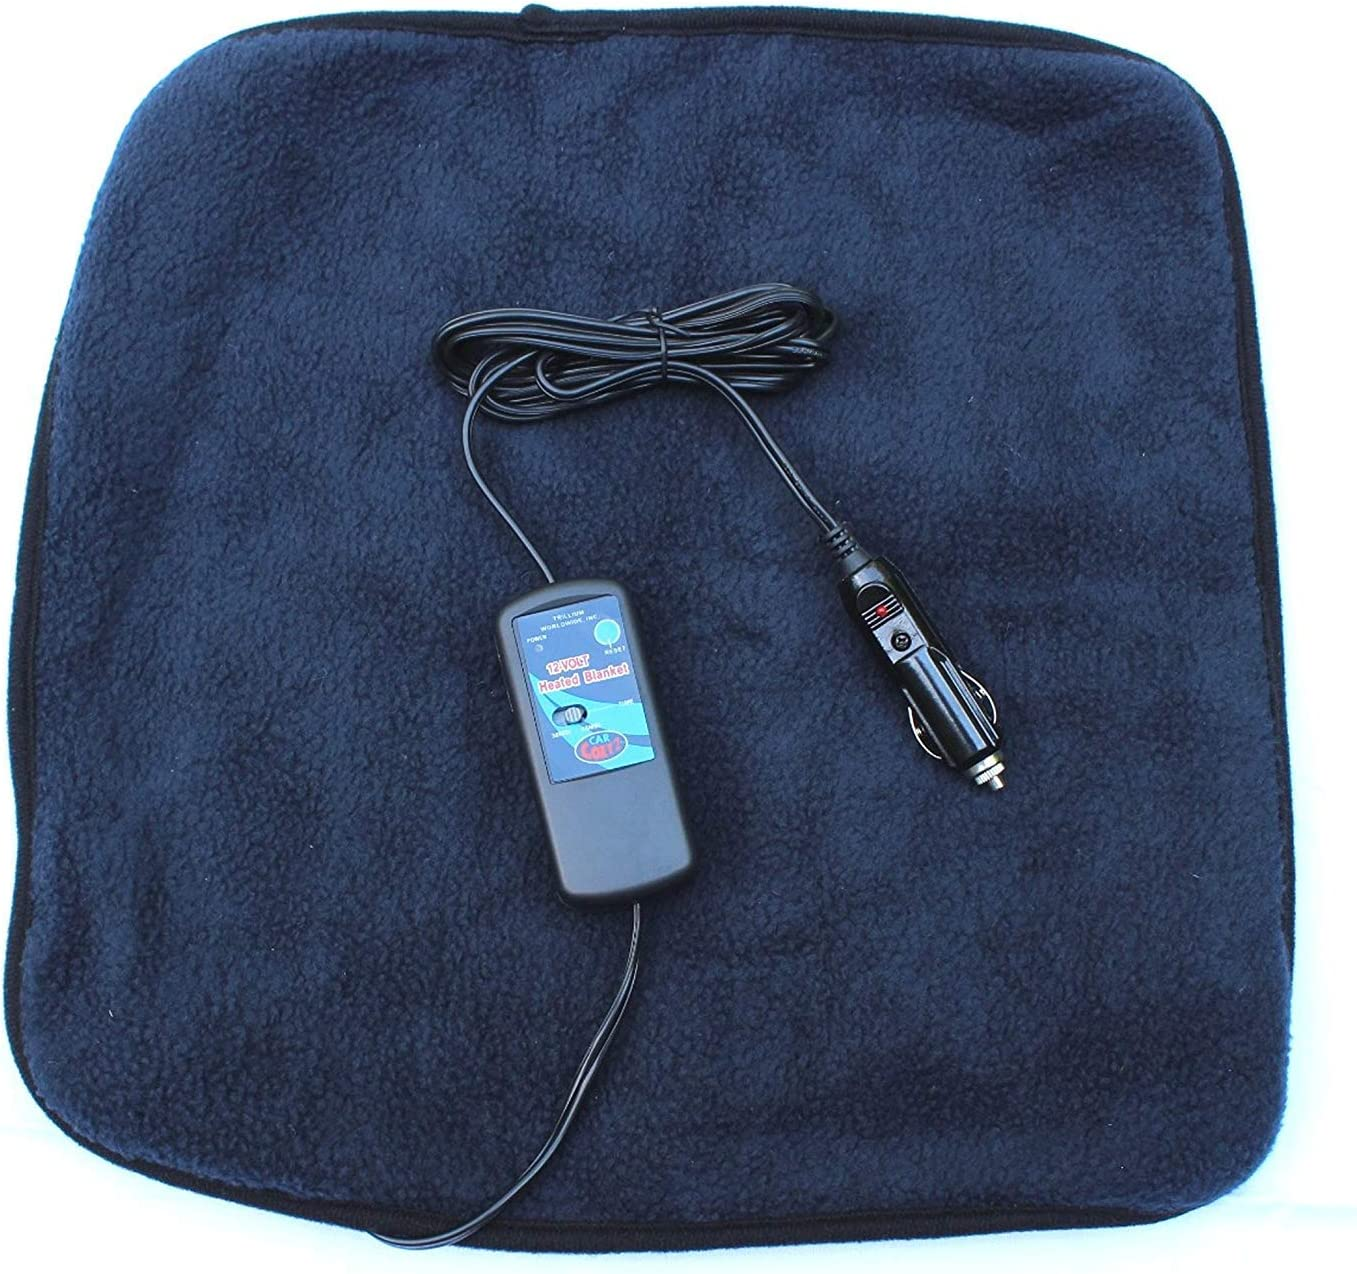 "Car Cozy 2 Mini 12-volt Heated Travel Pad (Navy, 16""x 16"") with Patented Safety Timer by Trillium Worldwide"